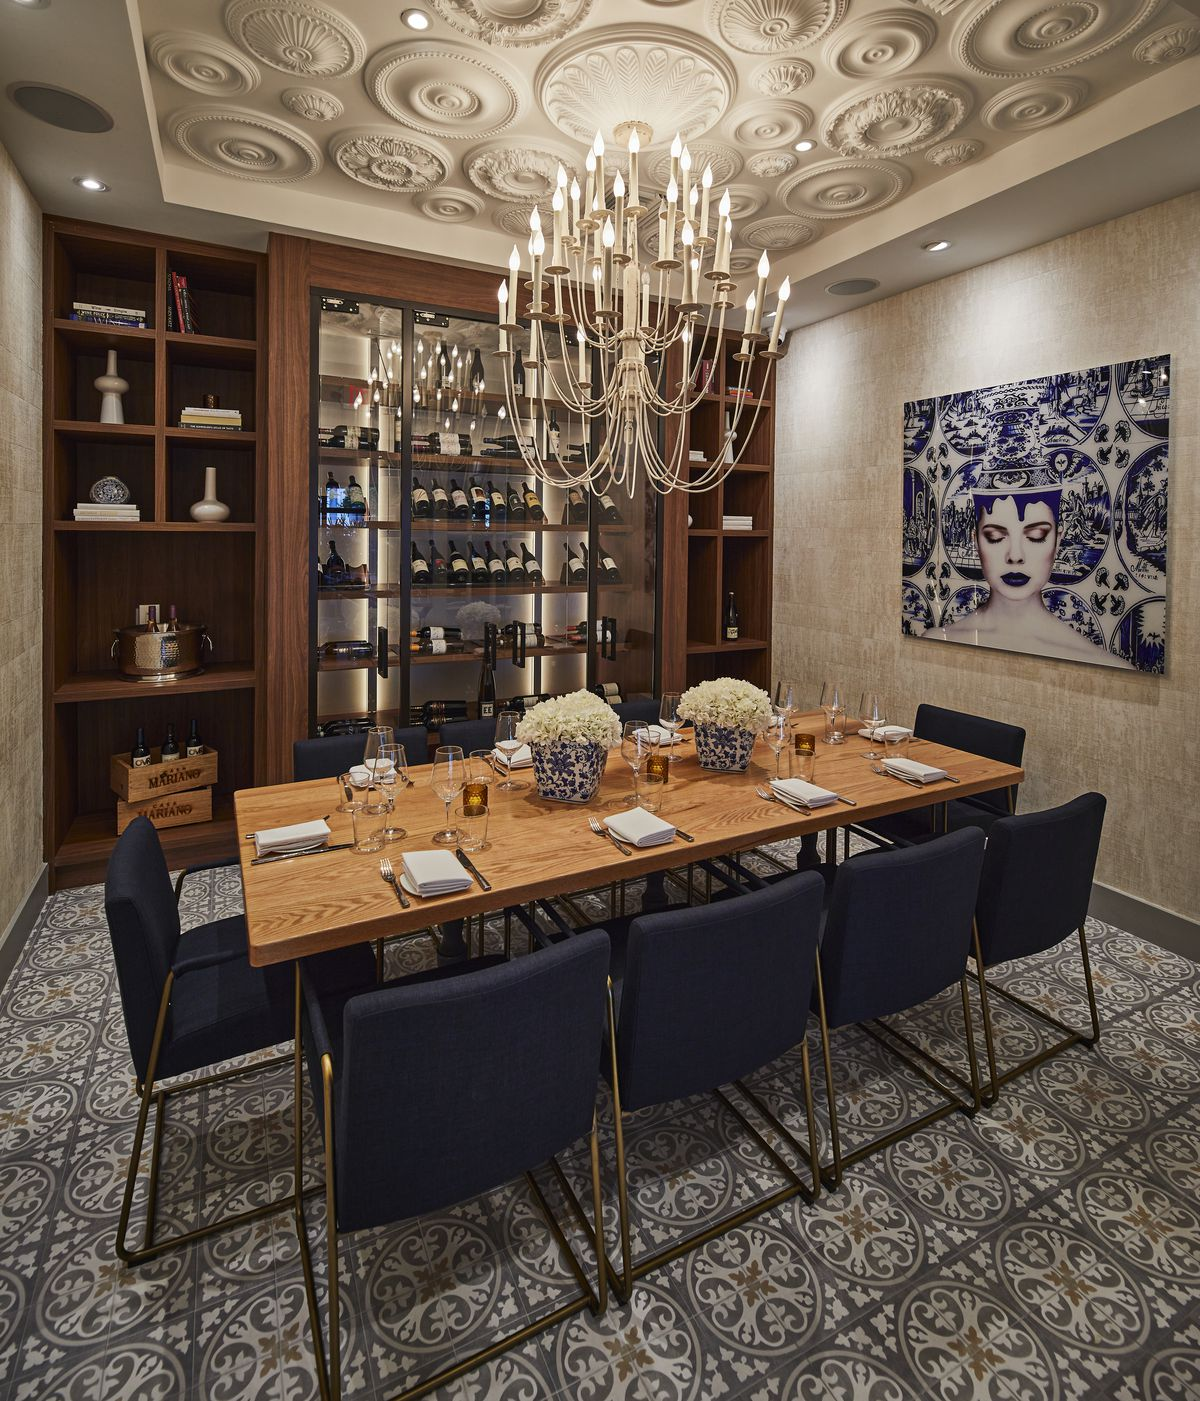 dining room with blue seats, brown table, large chandelier